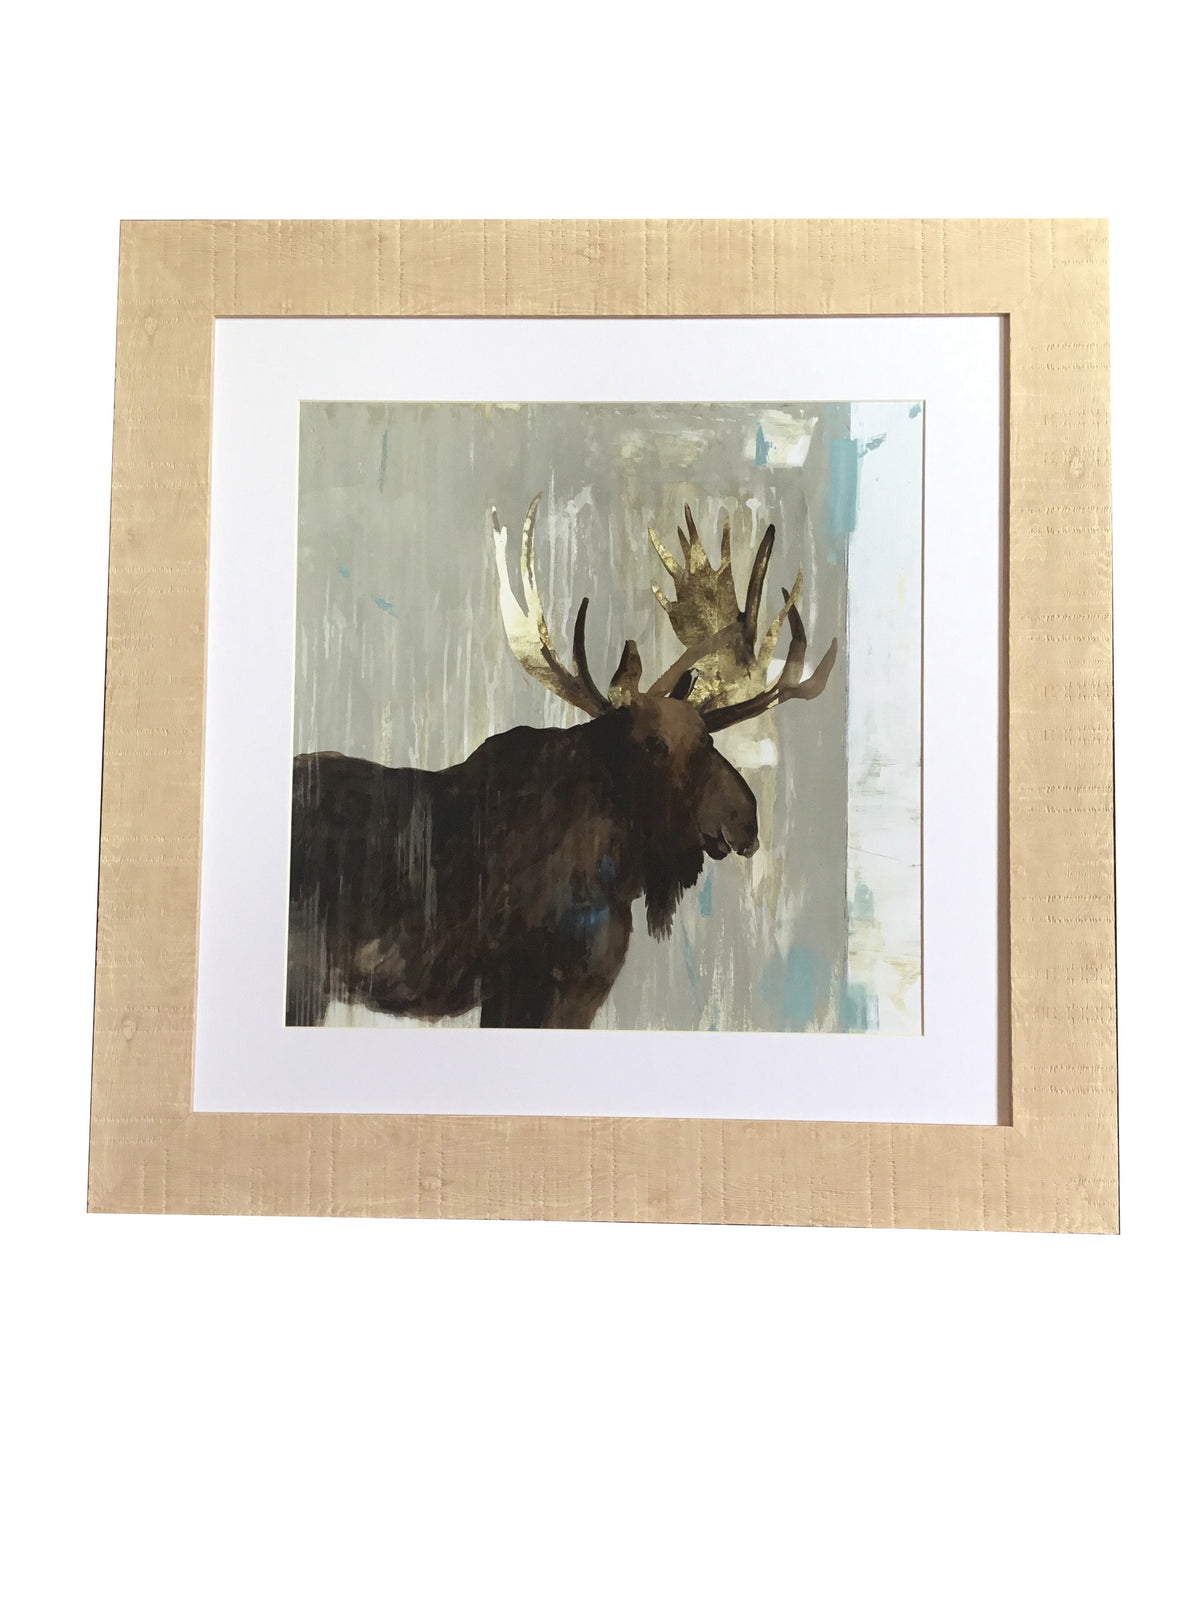 Moose Trails- M8673S8 - The Crosshill Gallery